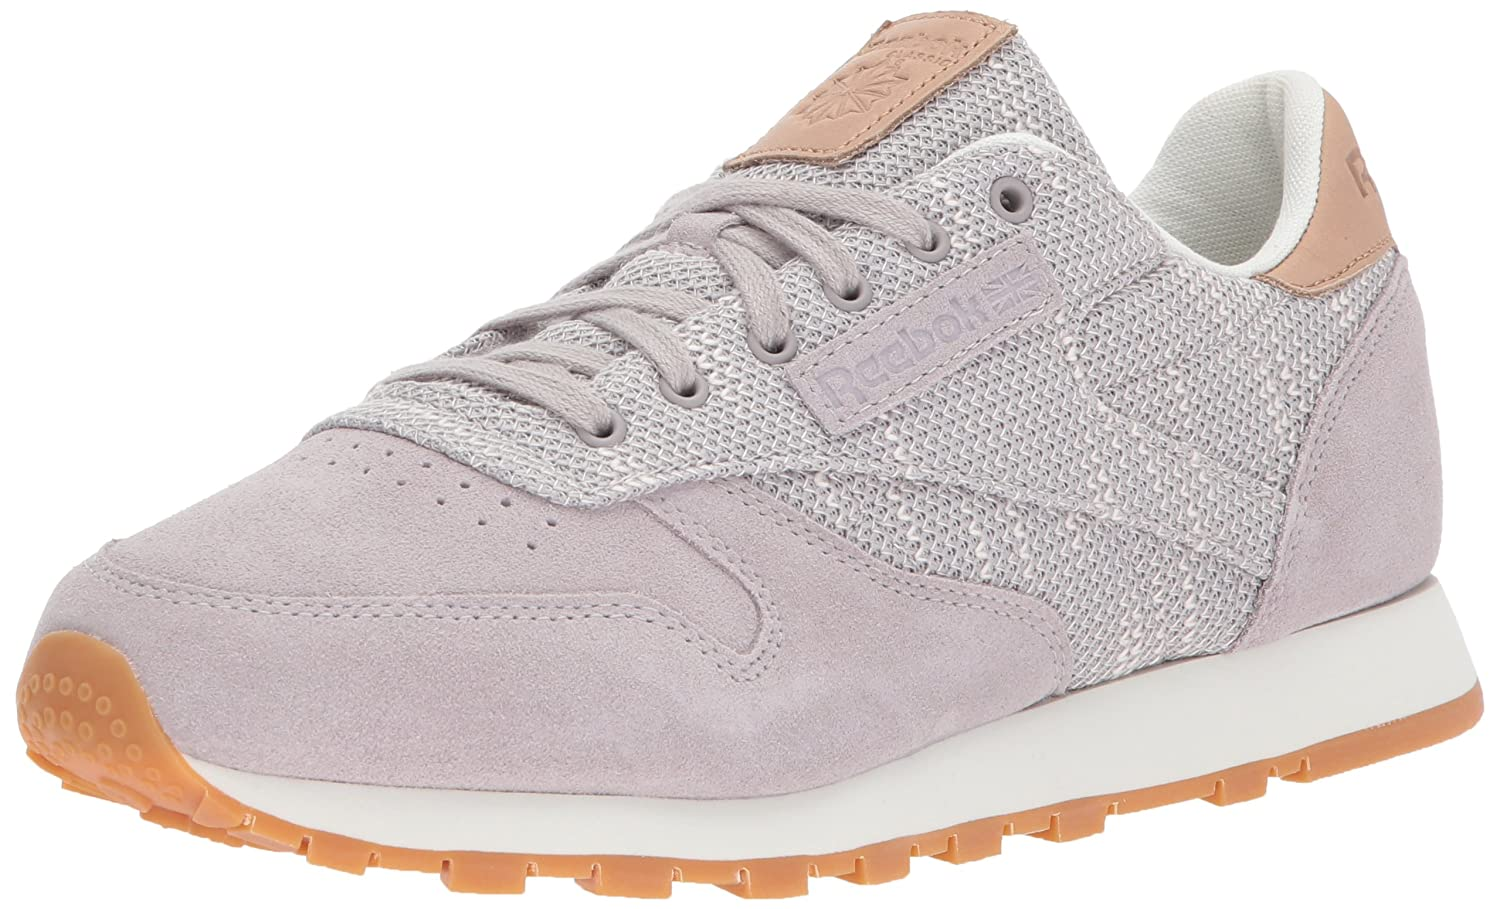 Reebok Women's CL Leather Ebk Sneaker B074V1JGKS 7.5 B(M) US|Whisper Grey/Chalk/Lilac